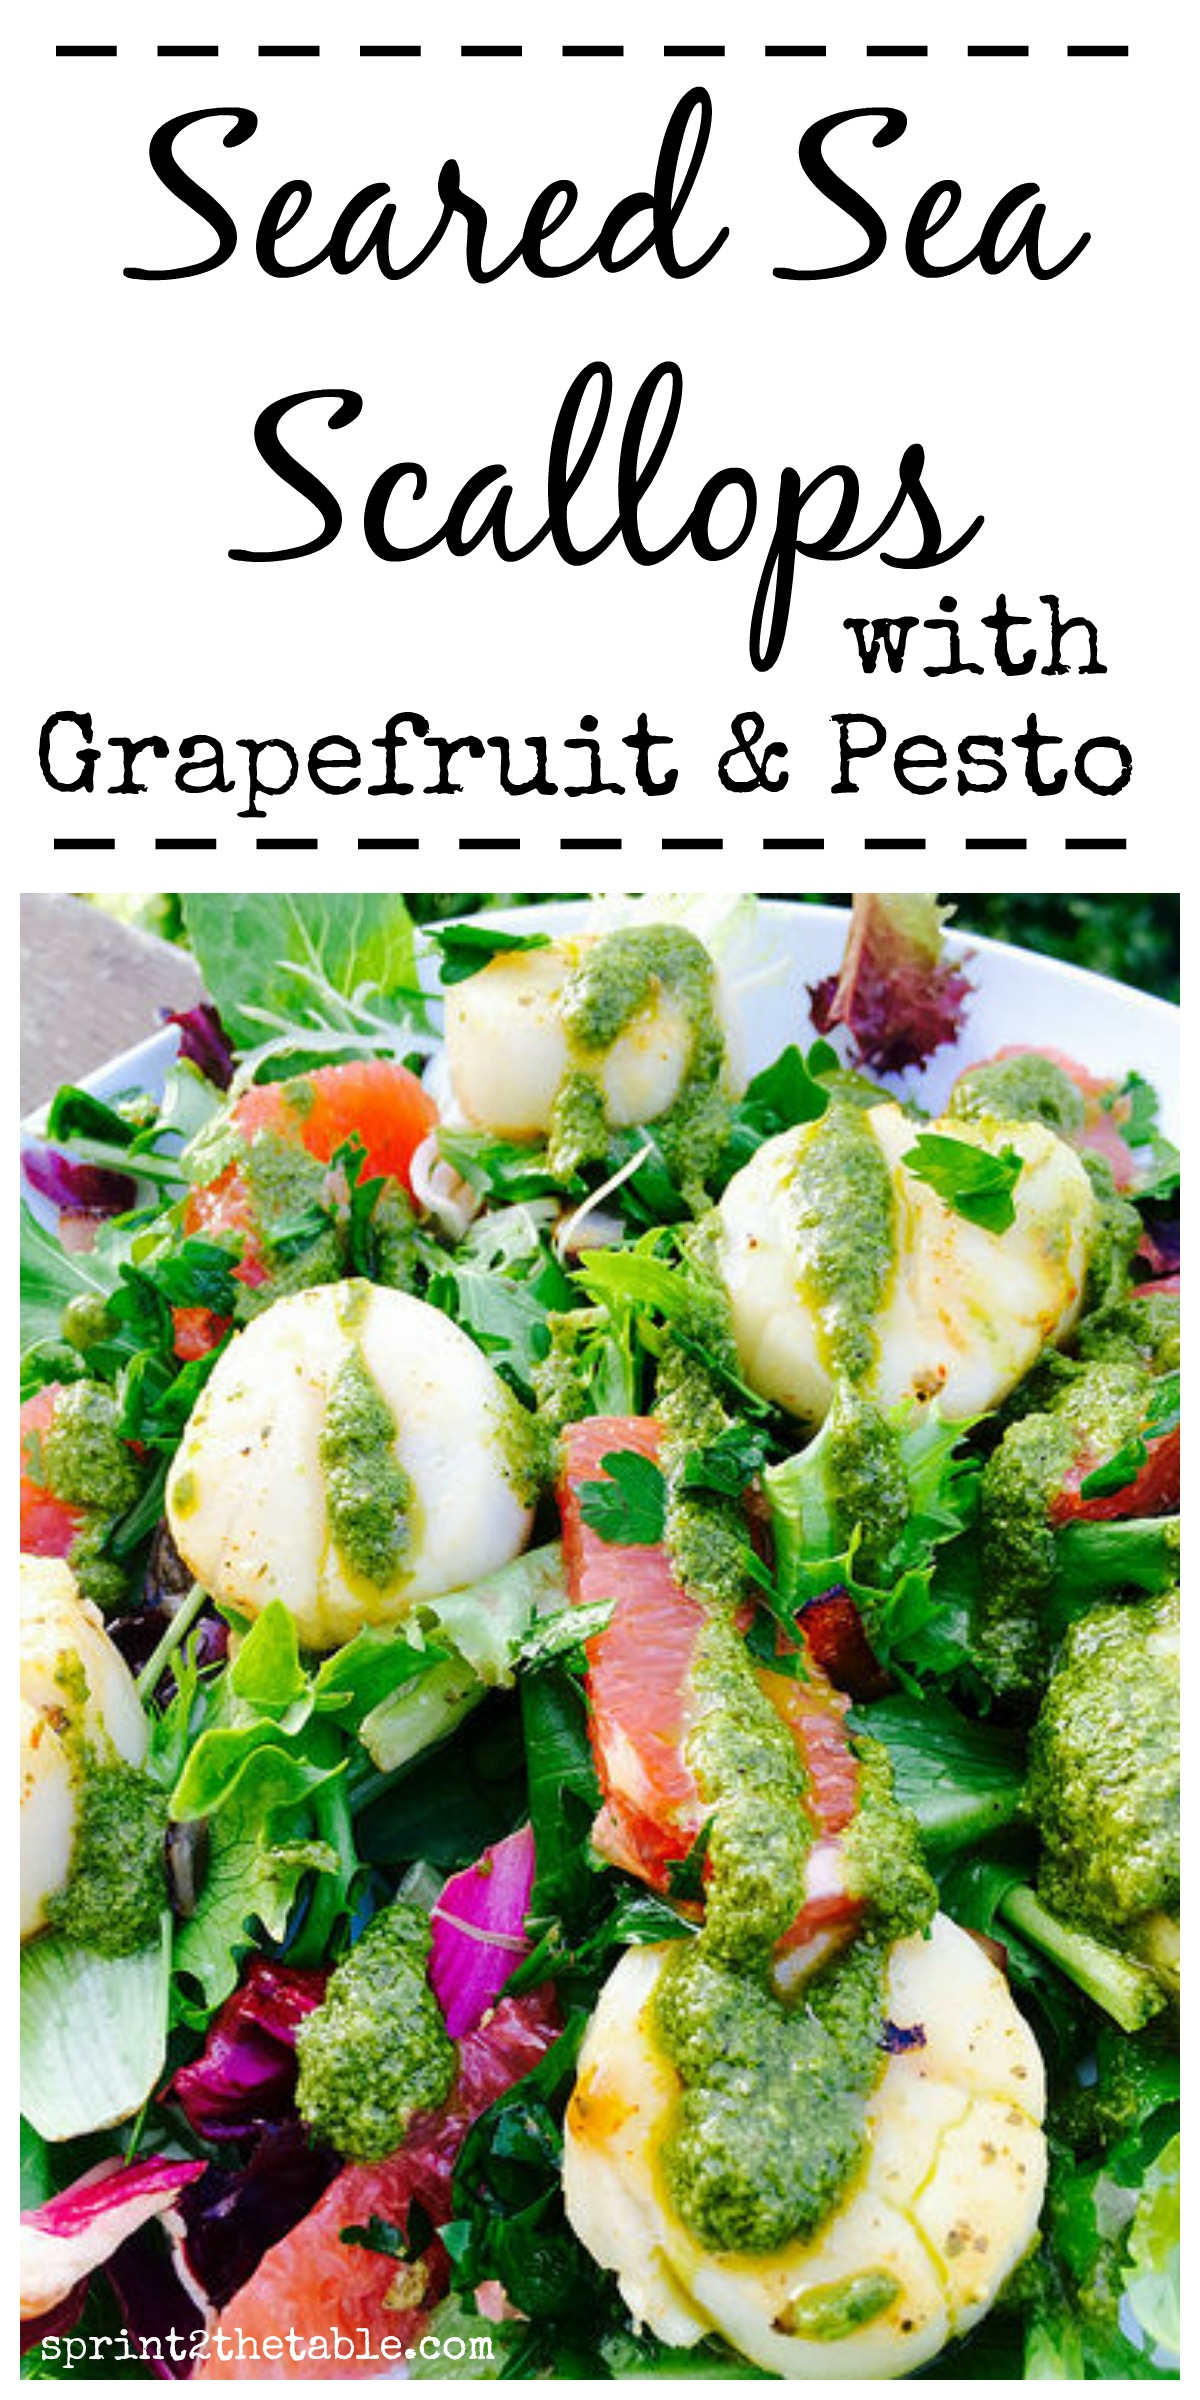 Seared Sea Scallops with Grapefruit & Pesto - this light and healthy dish packs a TON of flavor in each bite!